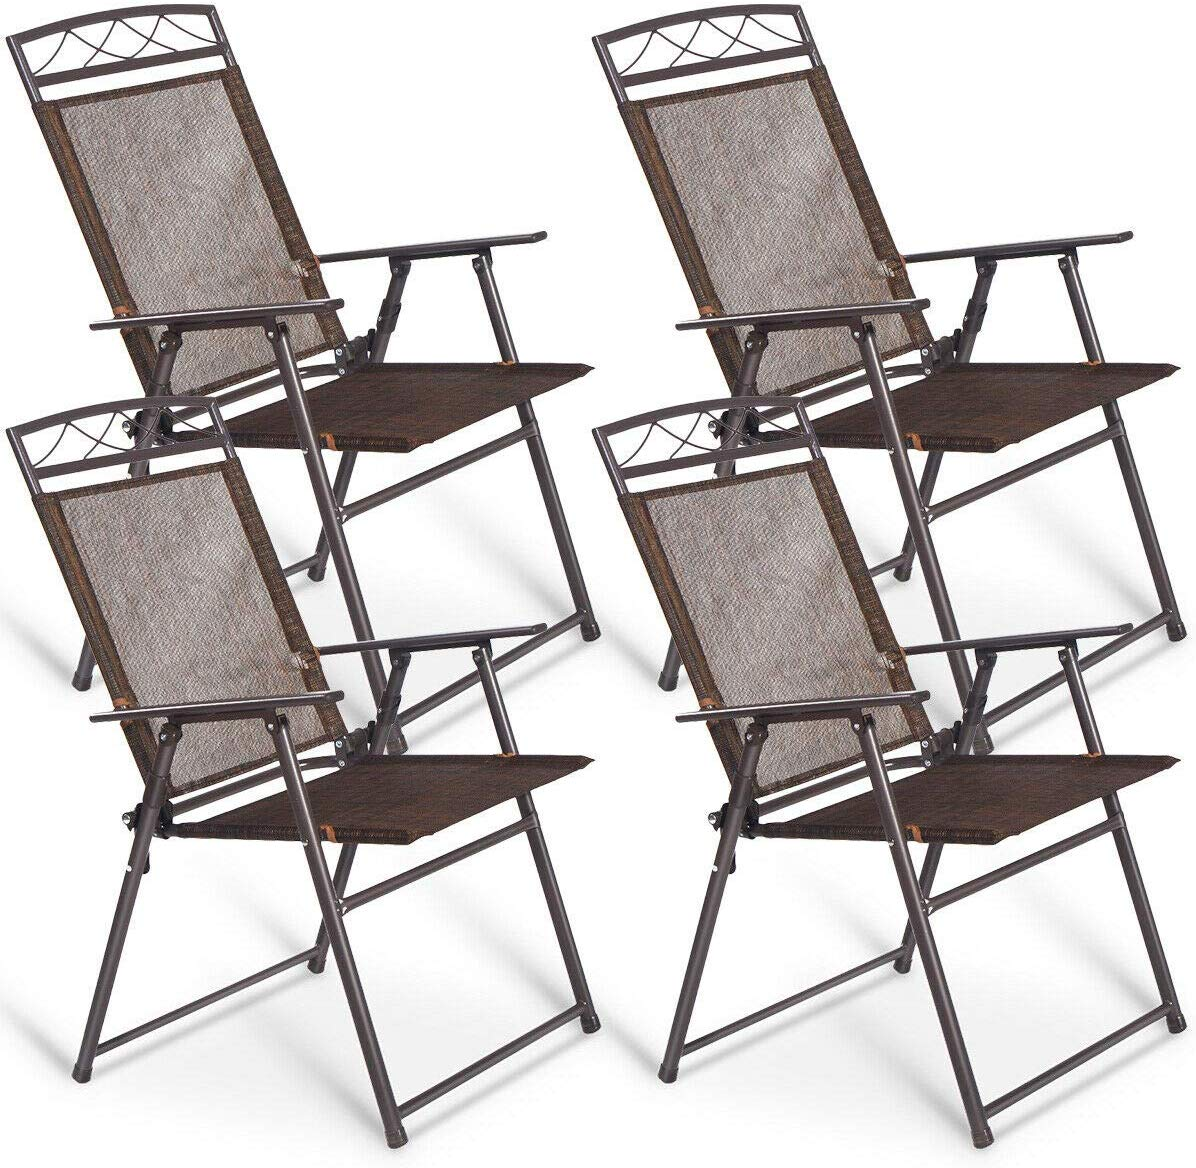 Giantex Set of 4 Patio Folding Sling Chairs